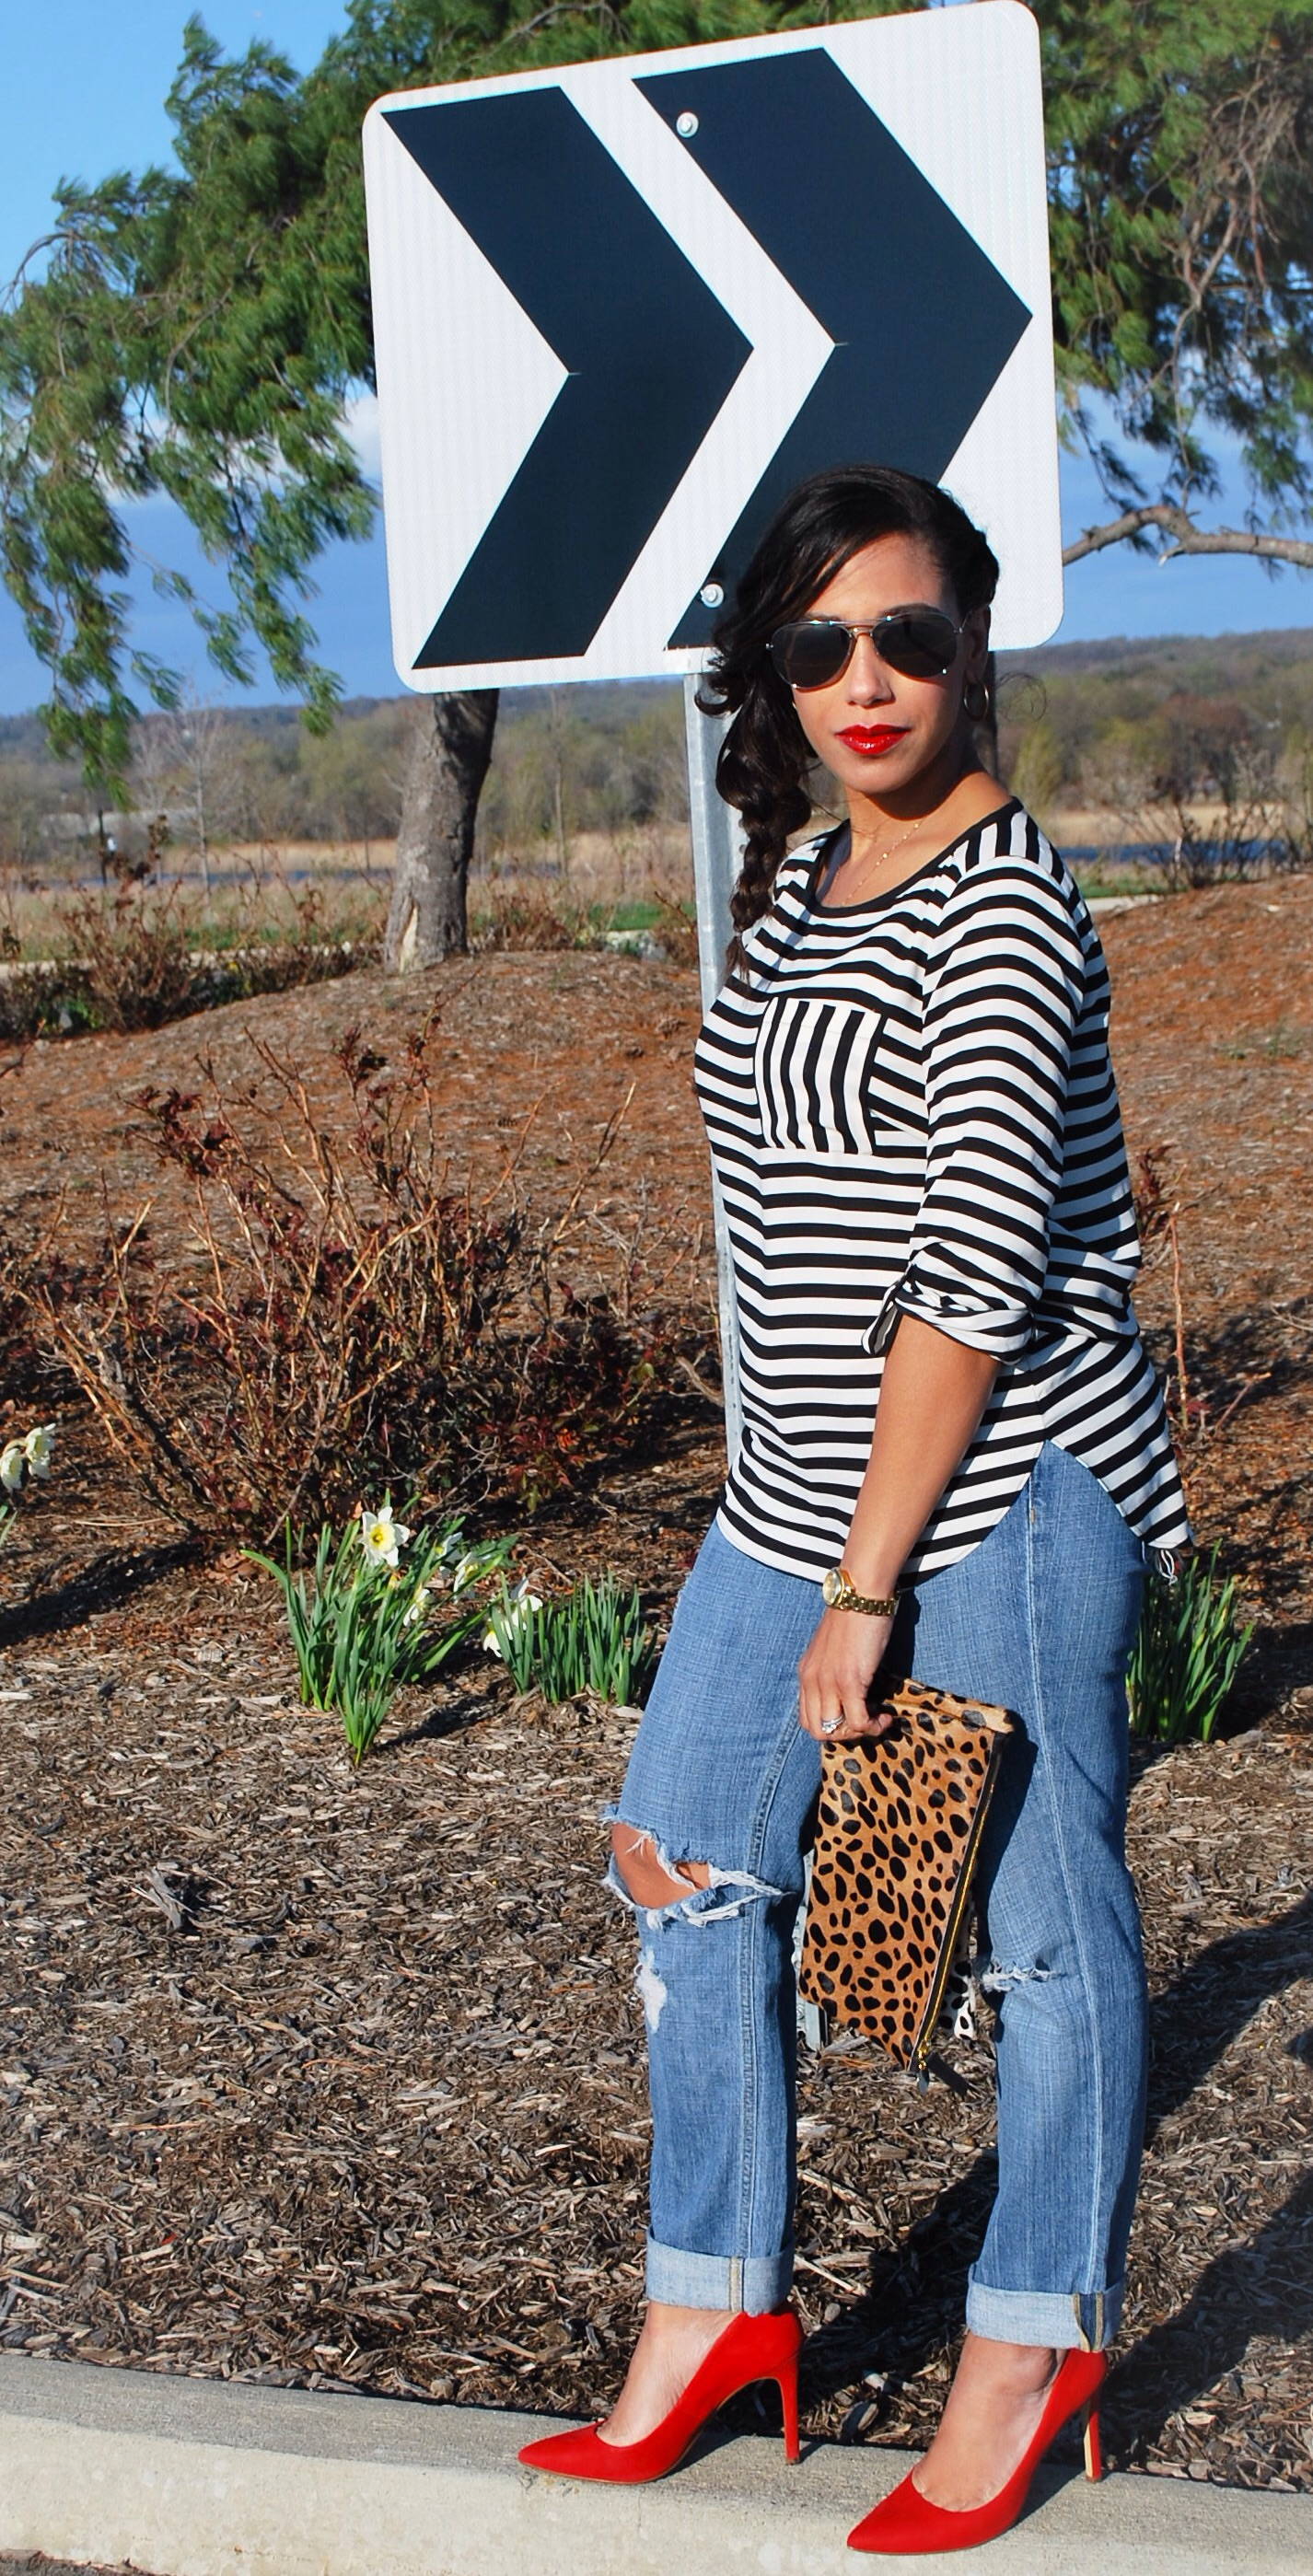 This Season's Gold // Black and white stripes with leopard print